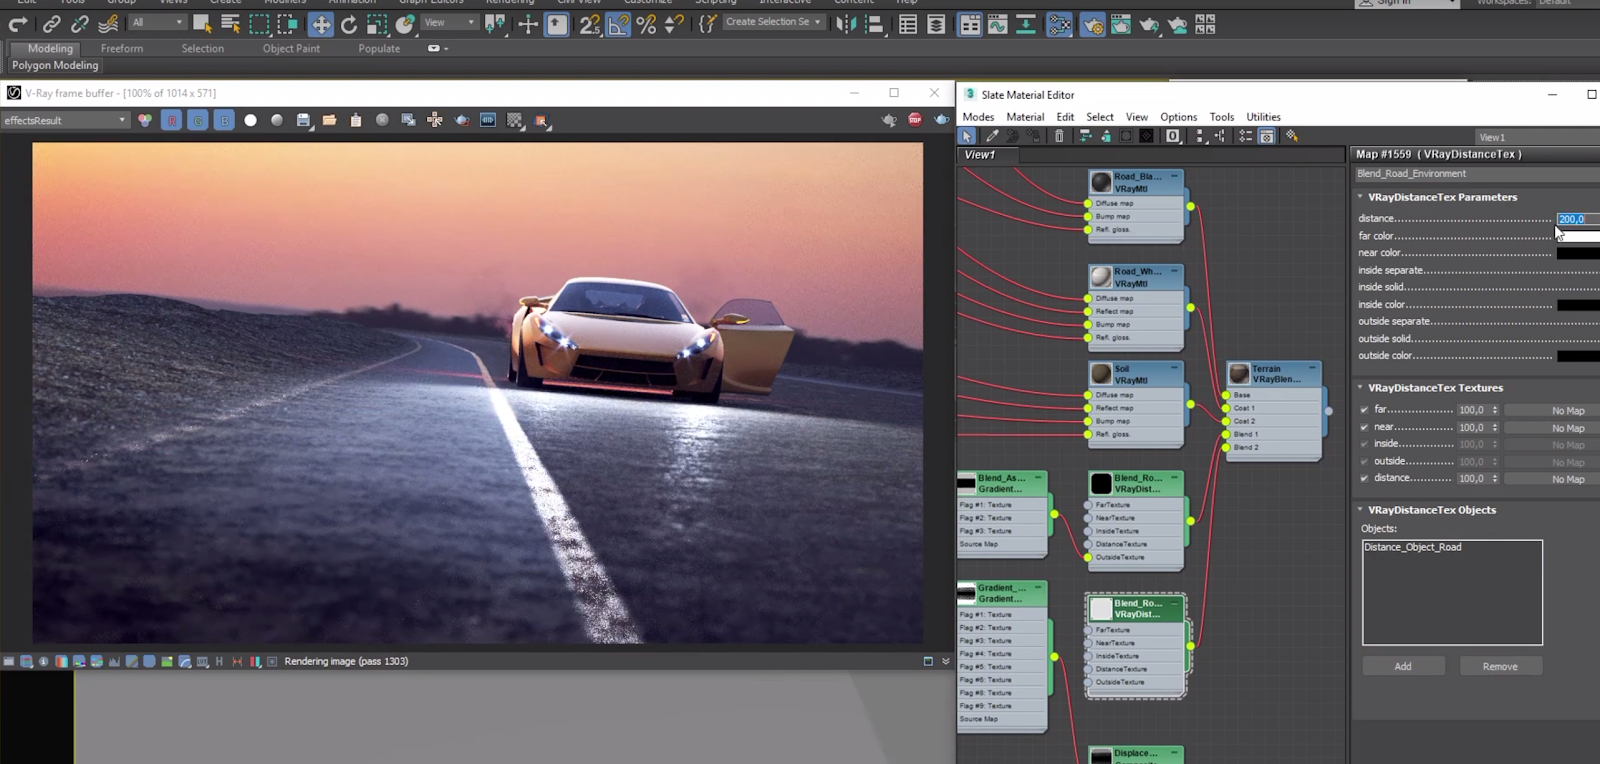 V-Ray Next, Update 2 for 3ds Max